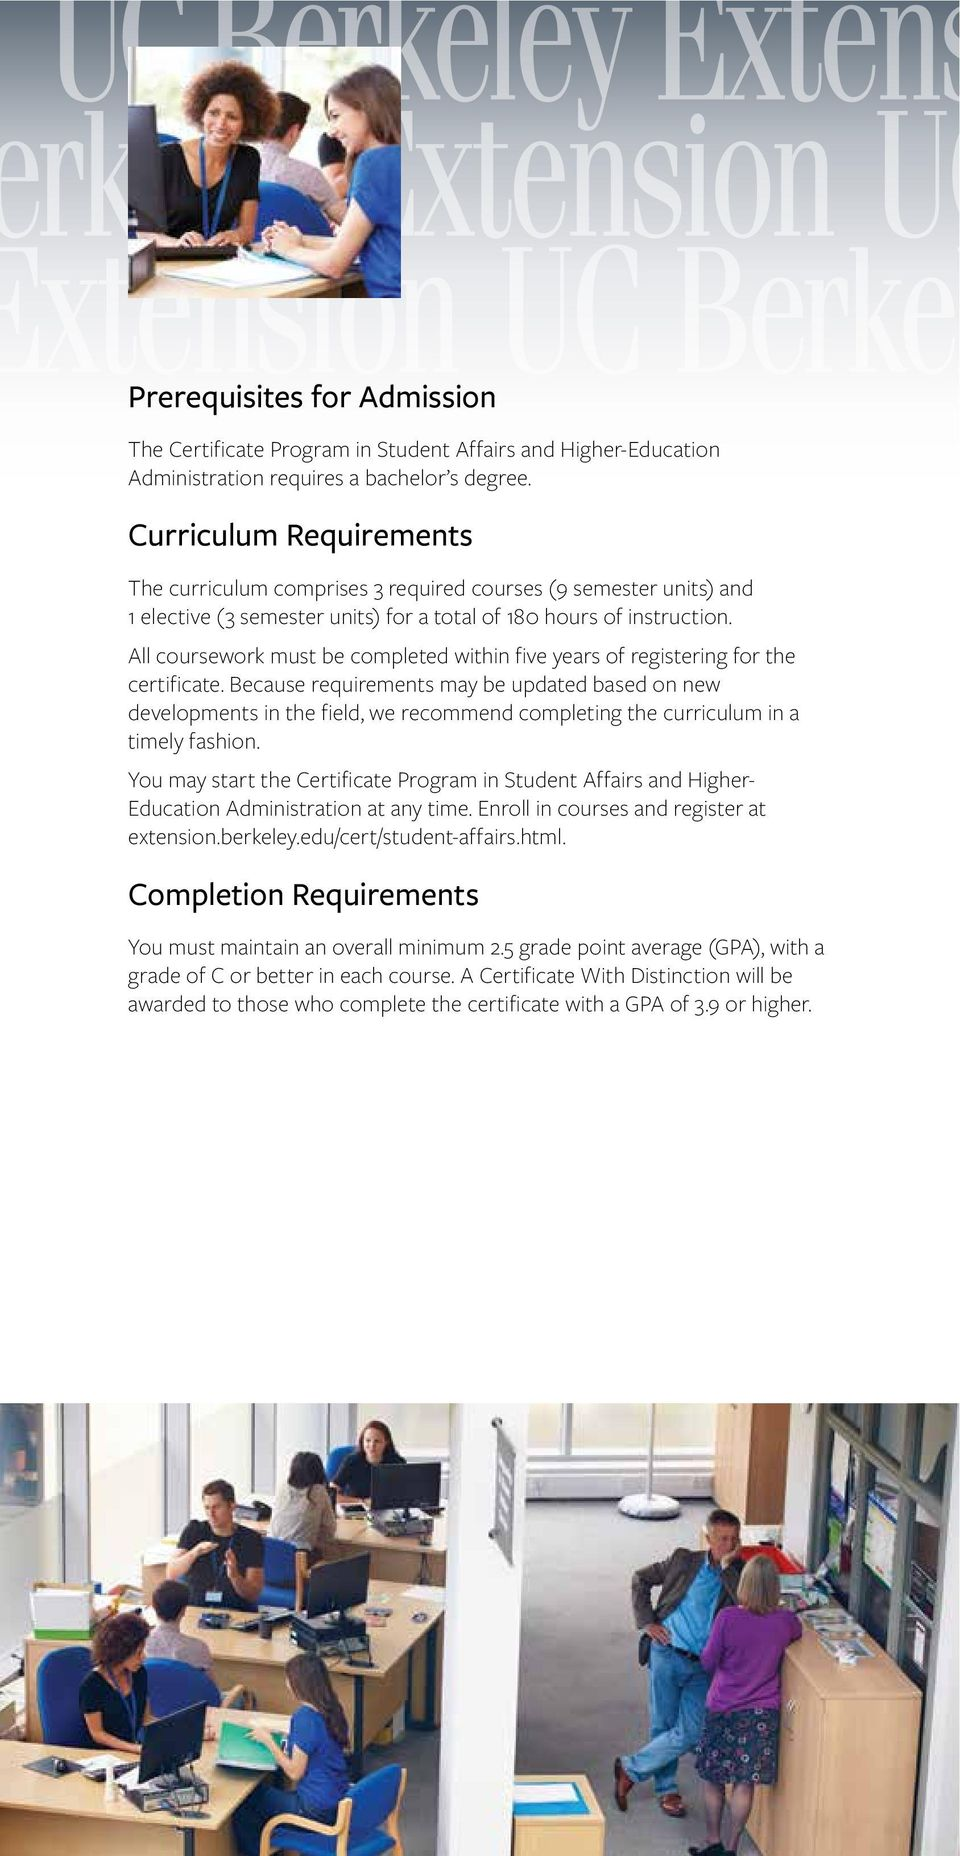 All coursework must be completed within five years of registering for the certificate.